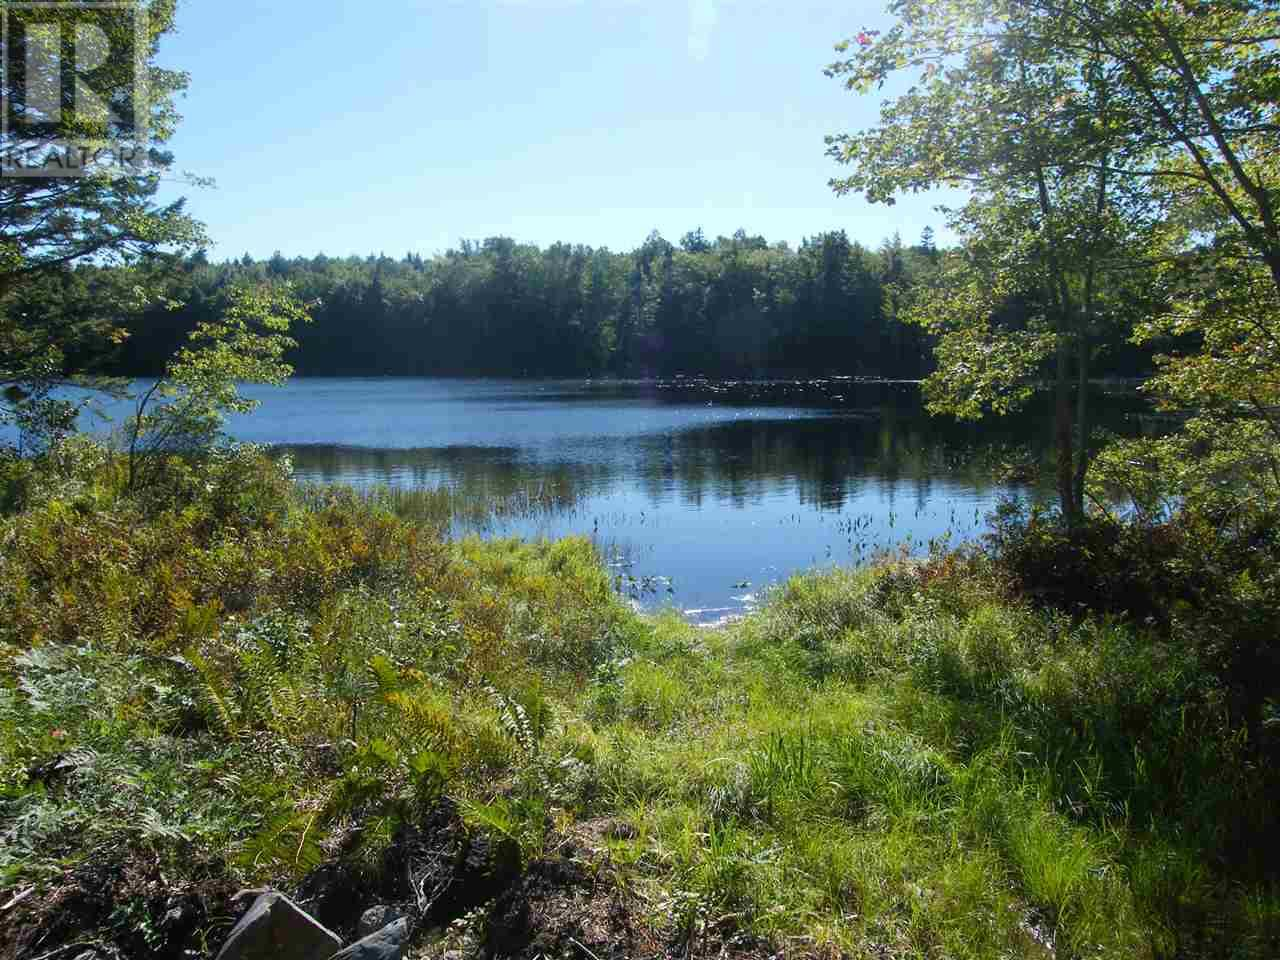 Buliding: Lakeview Drive, Conquerall Mills, NS